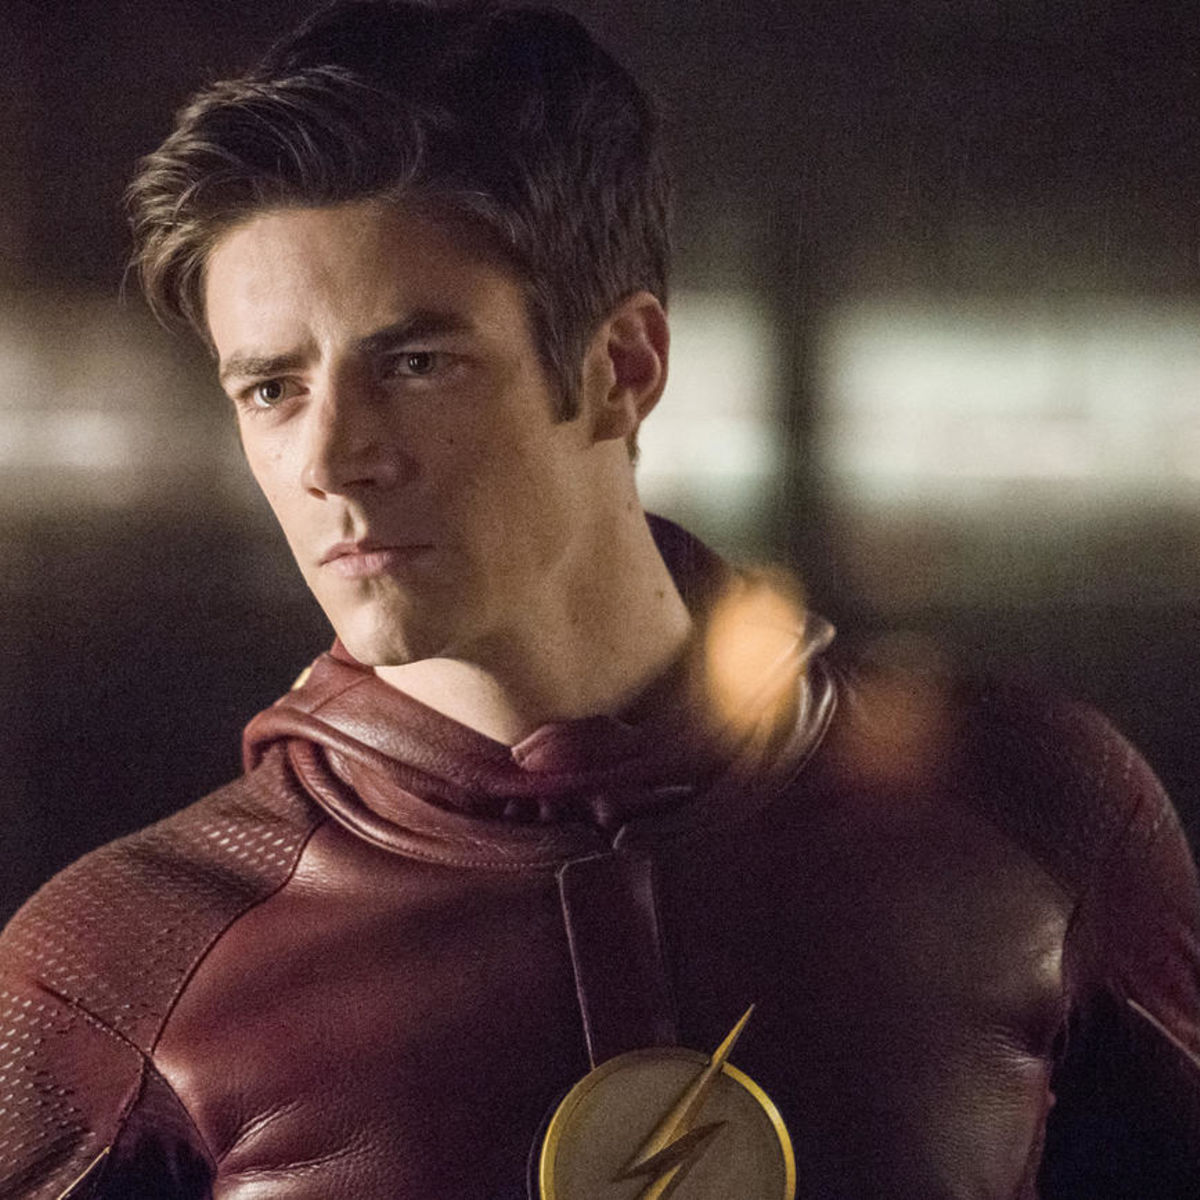 Grant gustin responds to accusations that he wont do cons blastr grant gustin responds to accusations that he wont do cons m4hsunfo